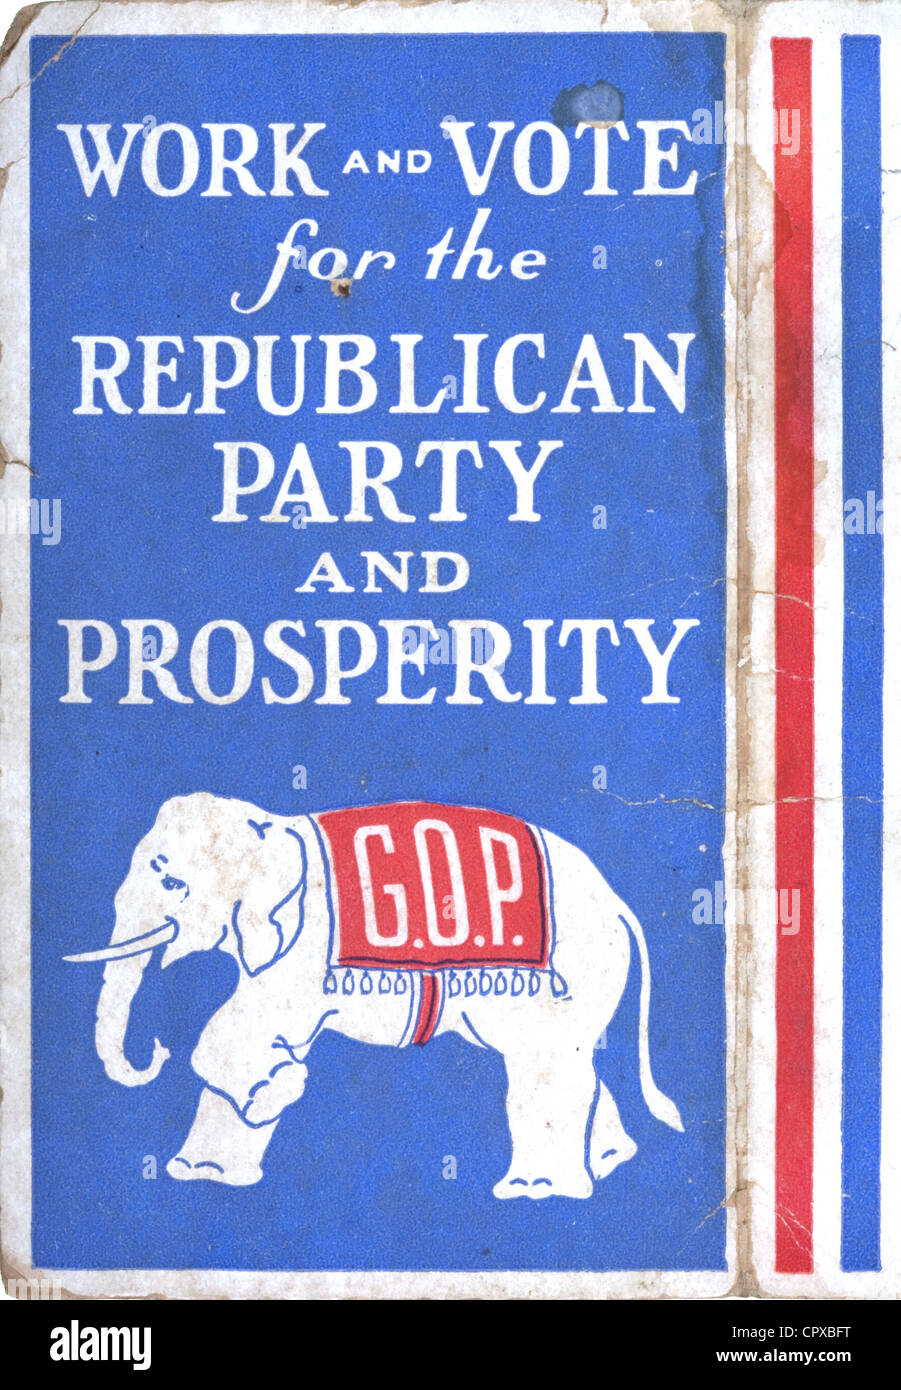 A 1928 GOP note card with slogans and the elephant as the symbol of the Republican Party - Stock Image